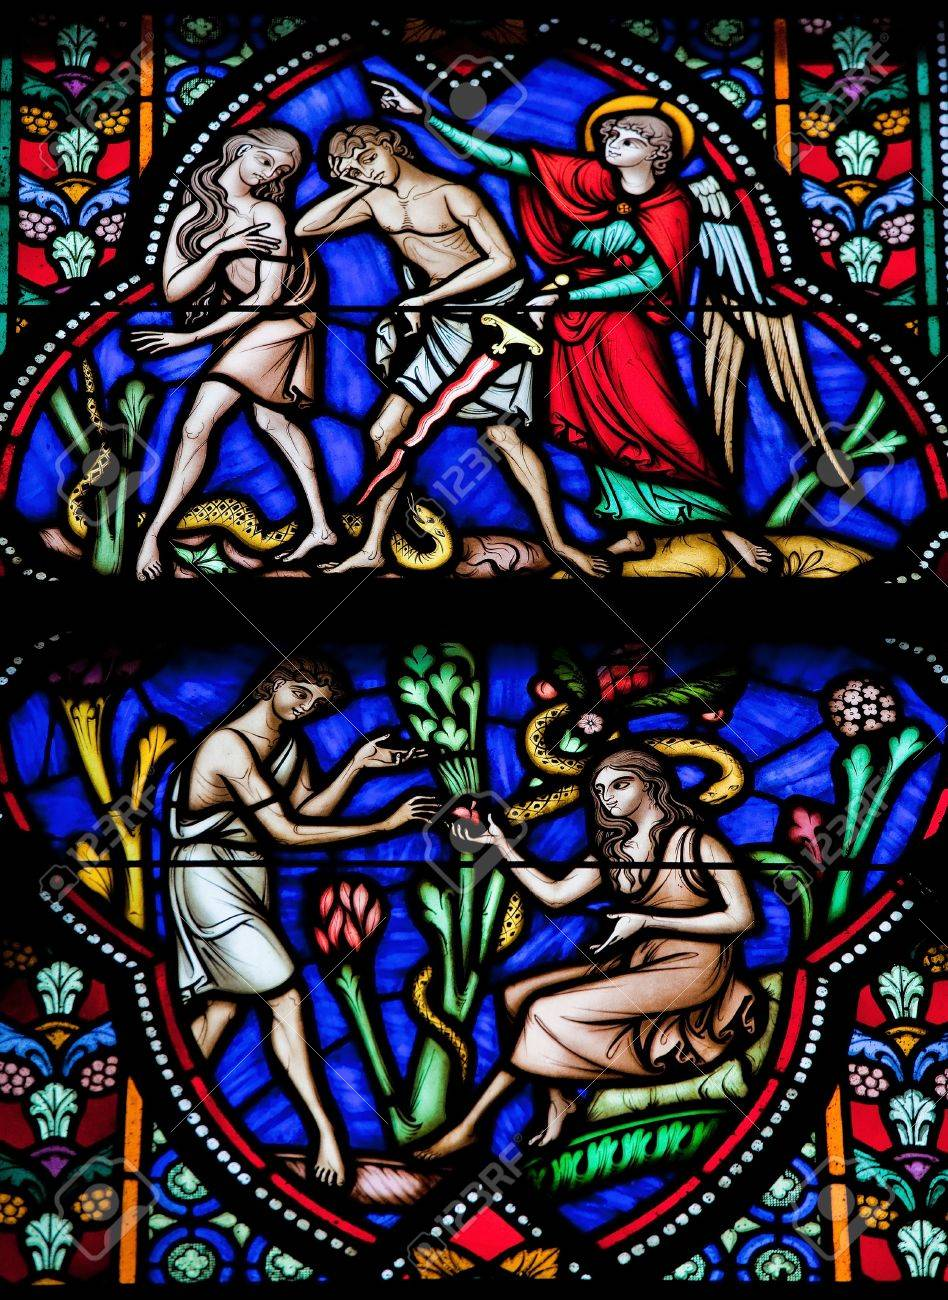 Adam and Eve eat the Forbidden Fruit and are expelled from Paradise  This window was created more than 150 years ago, no property release is required  Stock Photo - 14621969